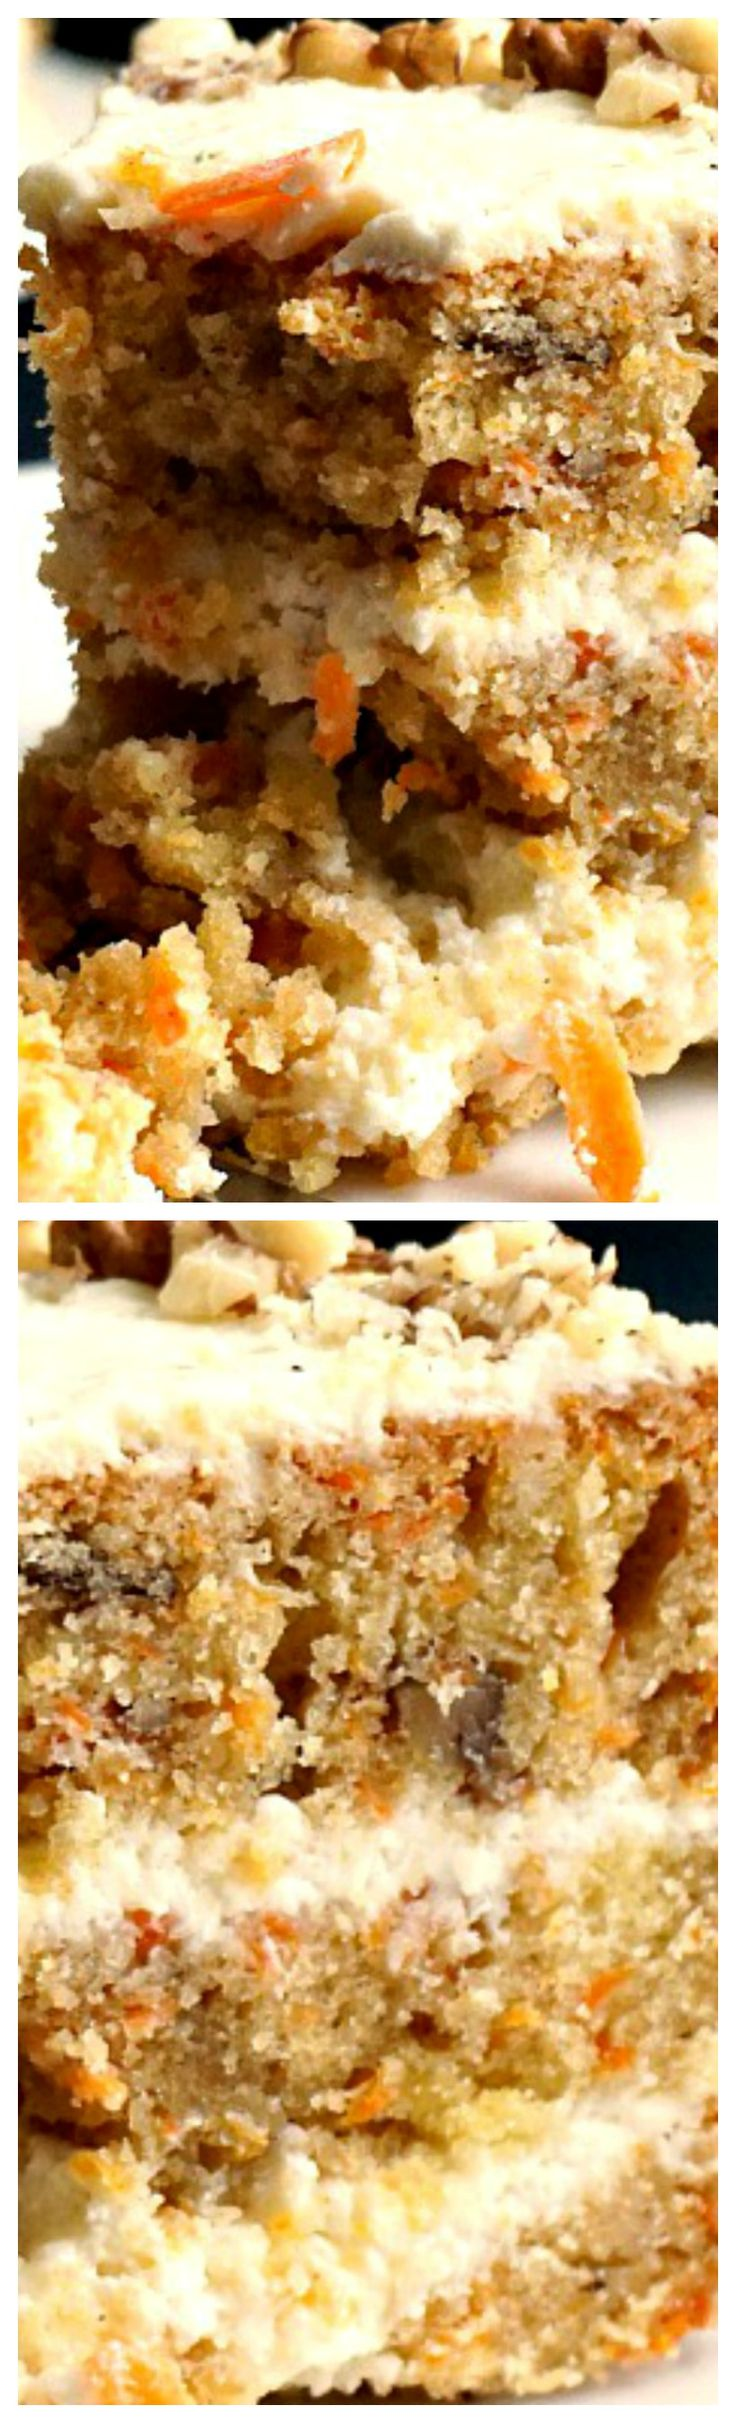 Carrot Cake with Walnuts and a Scrumptious Vanilla Cream Cheese Icing ~ It is beautifully moist, with a dense texture and a magnificent blend of spices that works very well with the sweetness of the cream cheese icing... A family-favourite dessert not only for Easter, but also all year round.